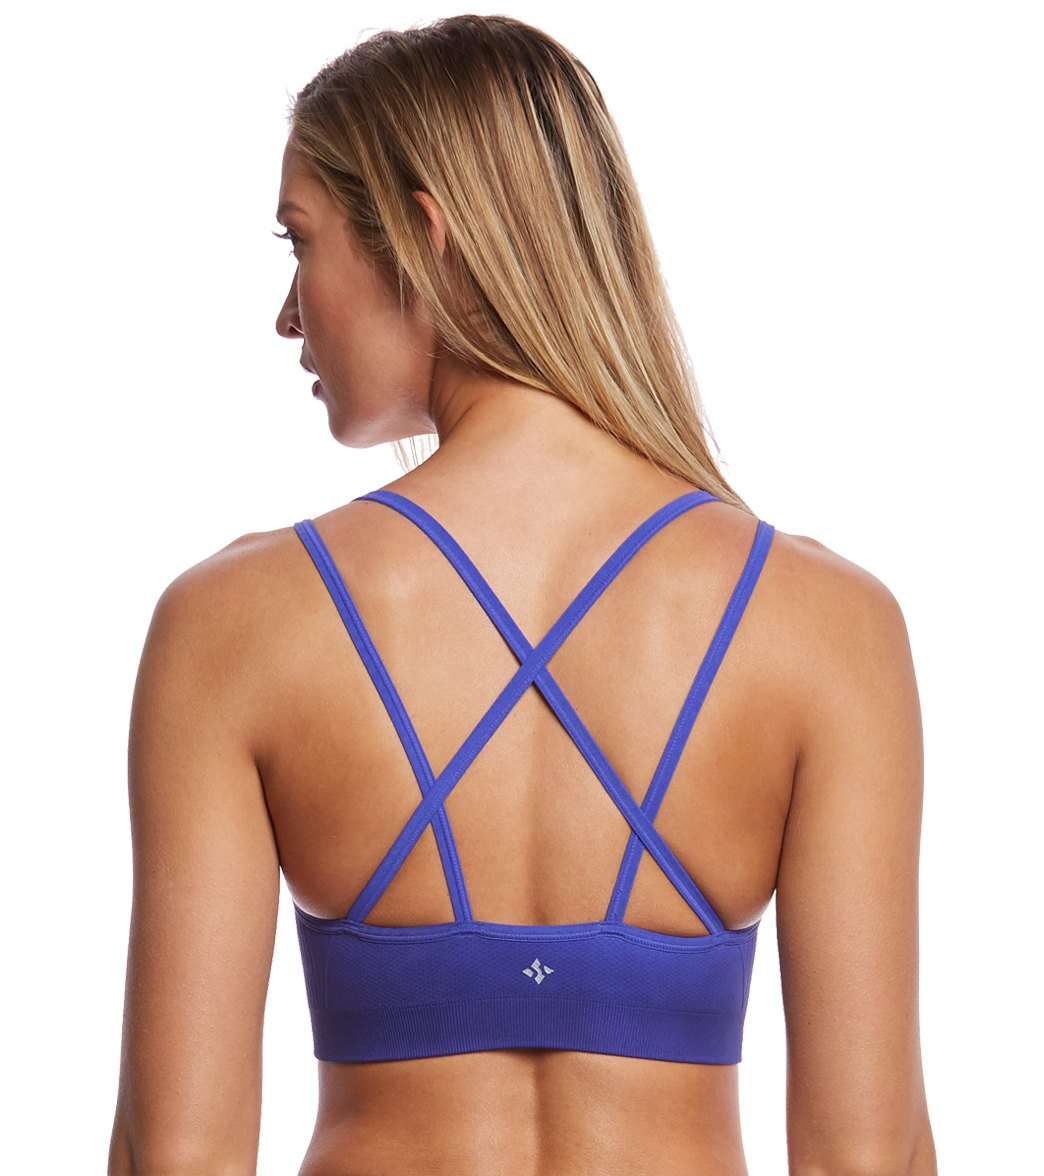 e215ae53aa5db NUX Ombre Strappy Seamless Yoga Sports Bra at YogaOutlet.com - Free ...